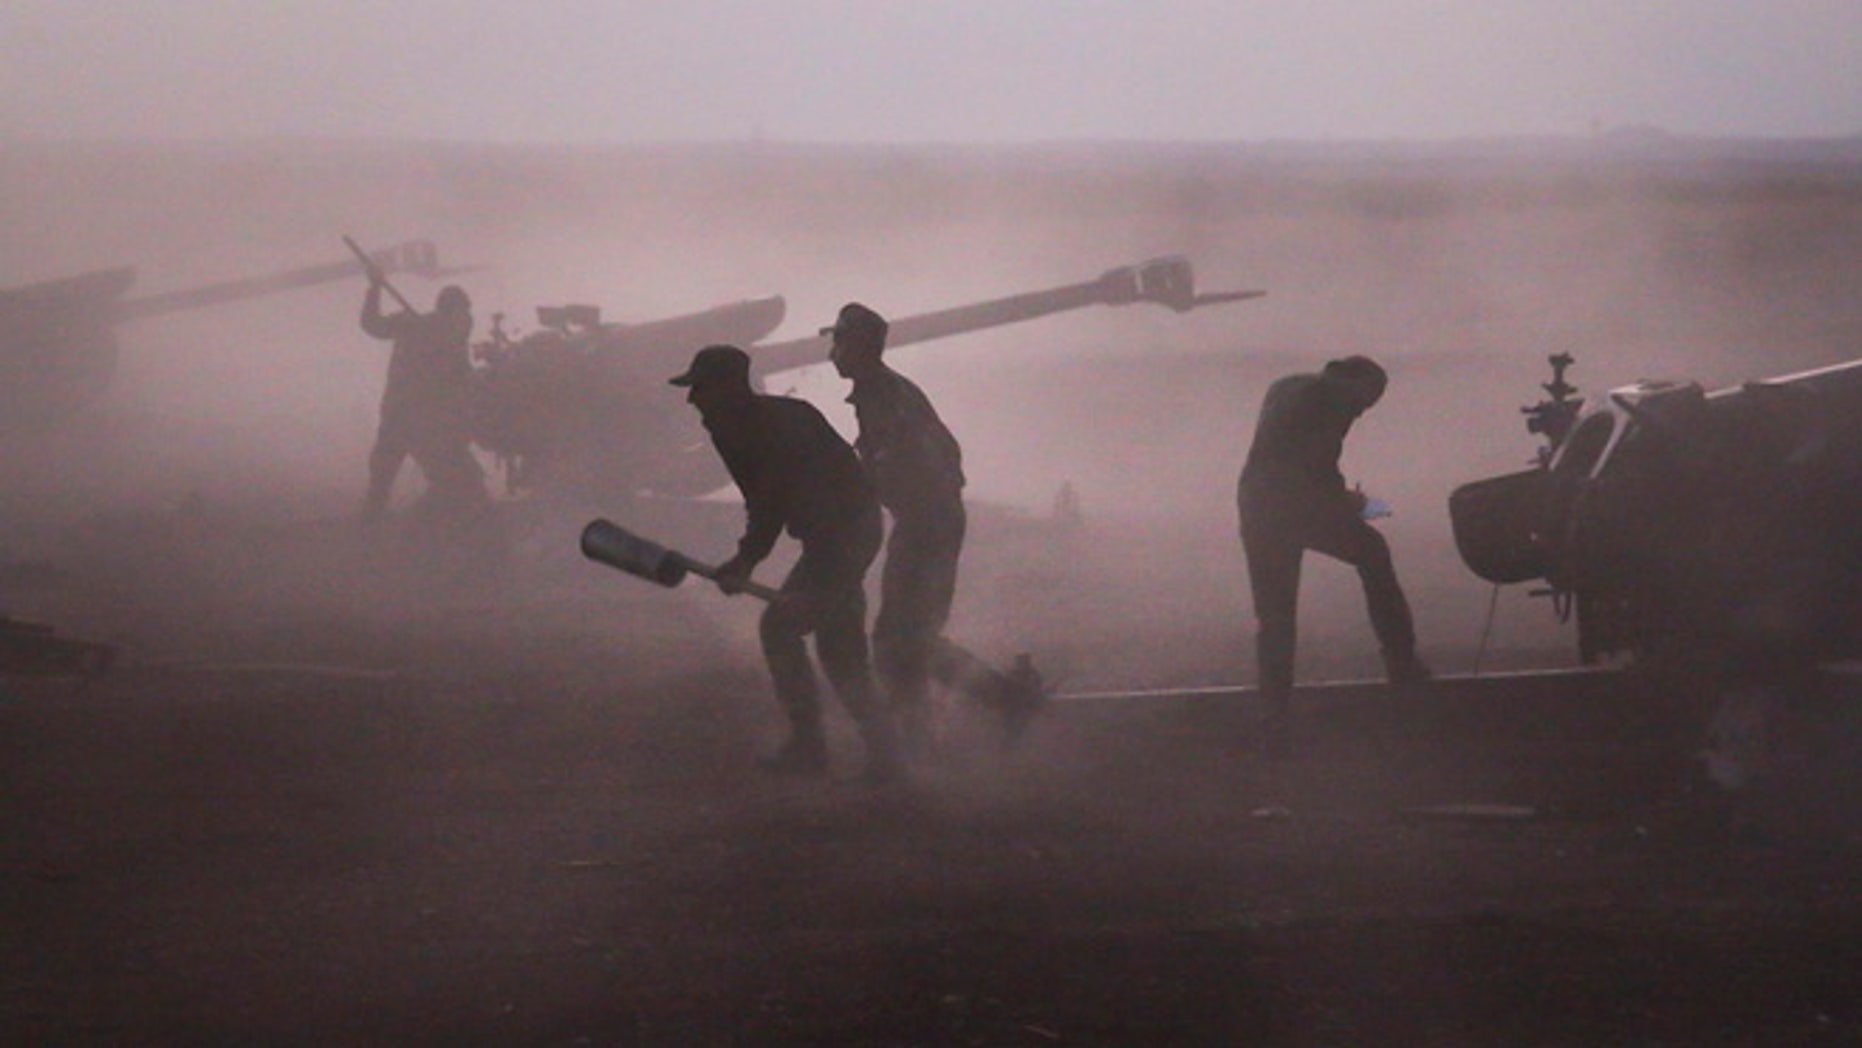 Oct. 7, 2015: Syrian army personnel load howitzers near the village of Morek in Syria.